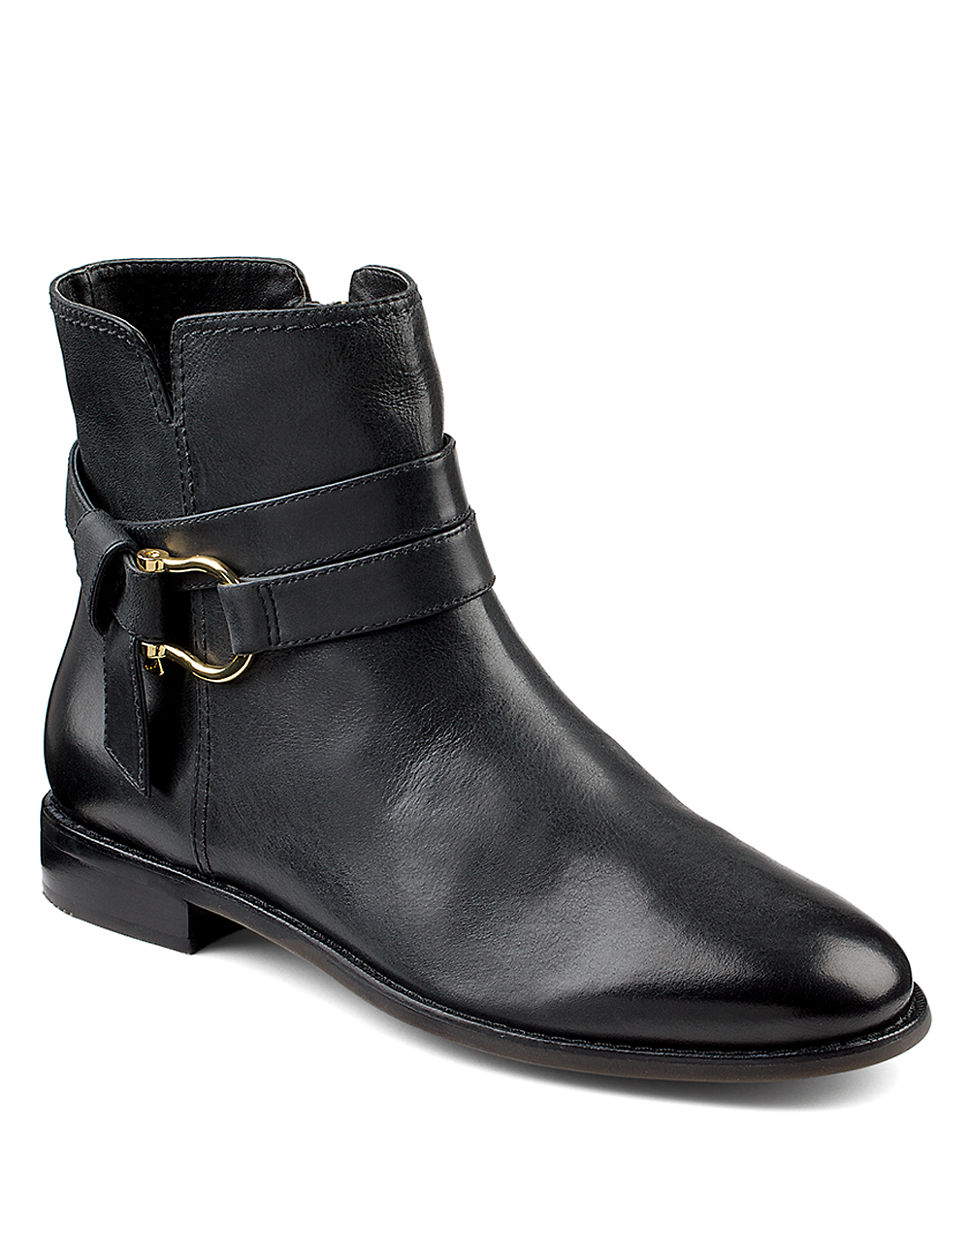 sperry top sider clinton leather ankle boots in black lyst